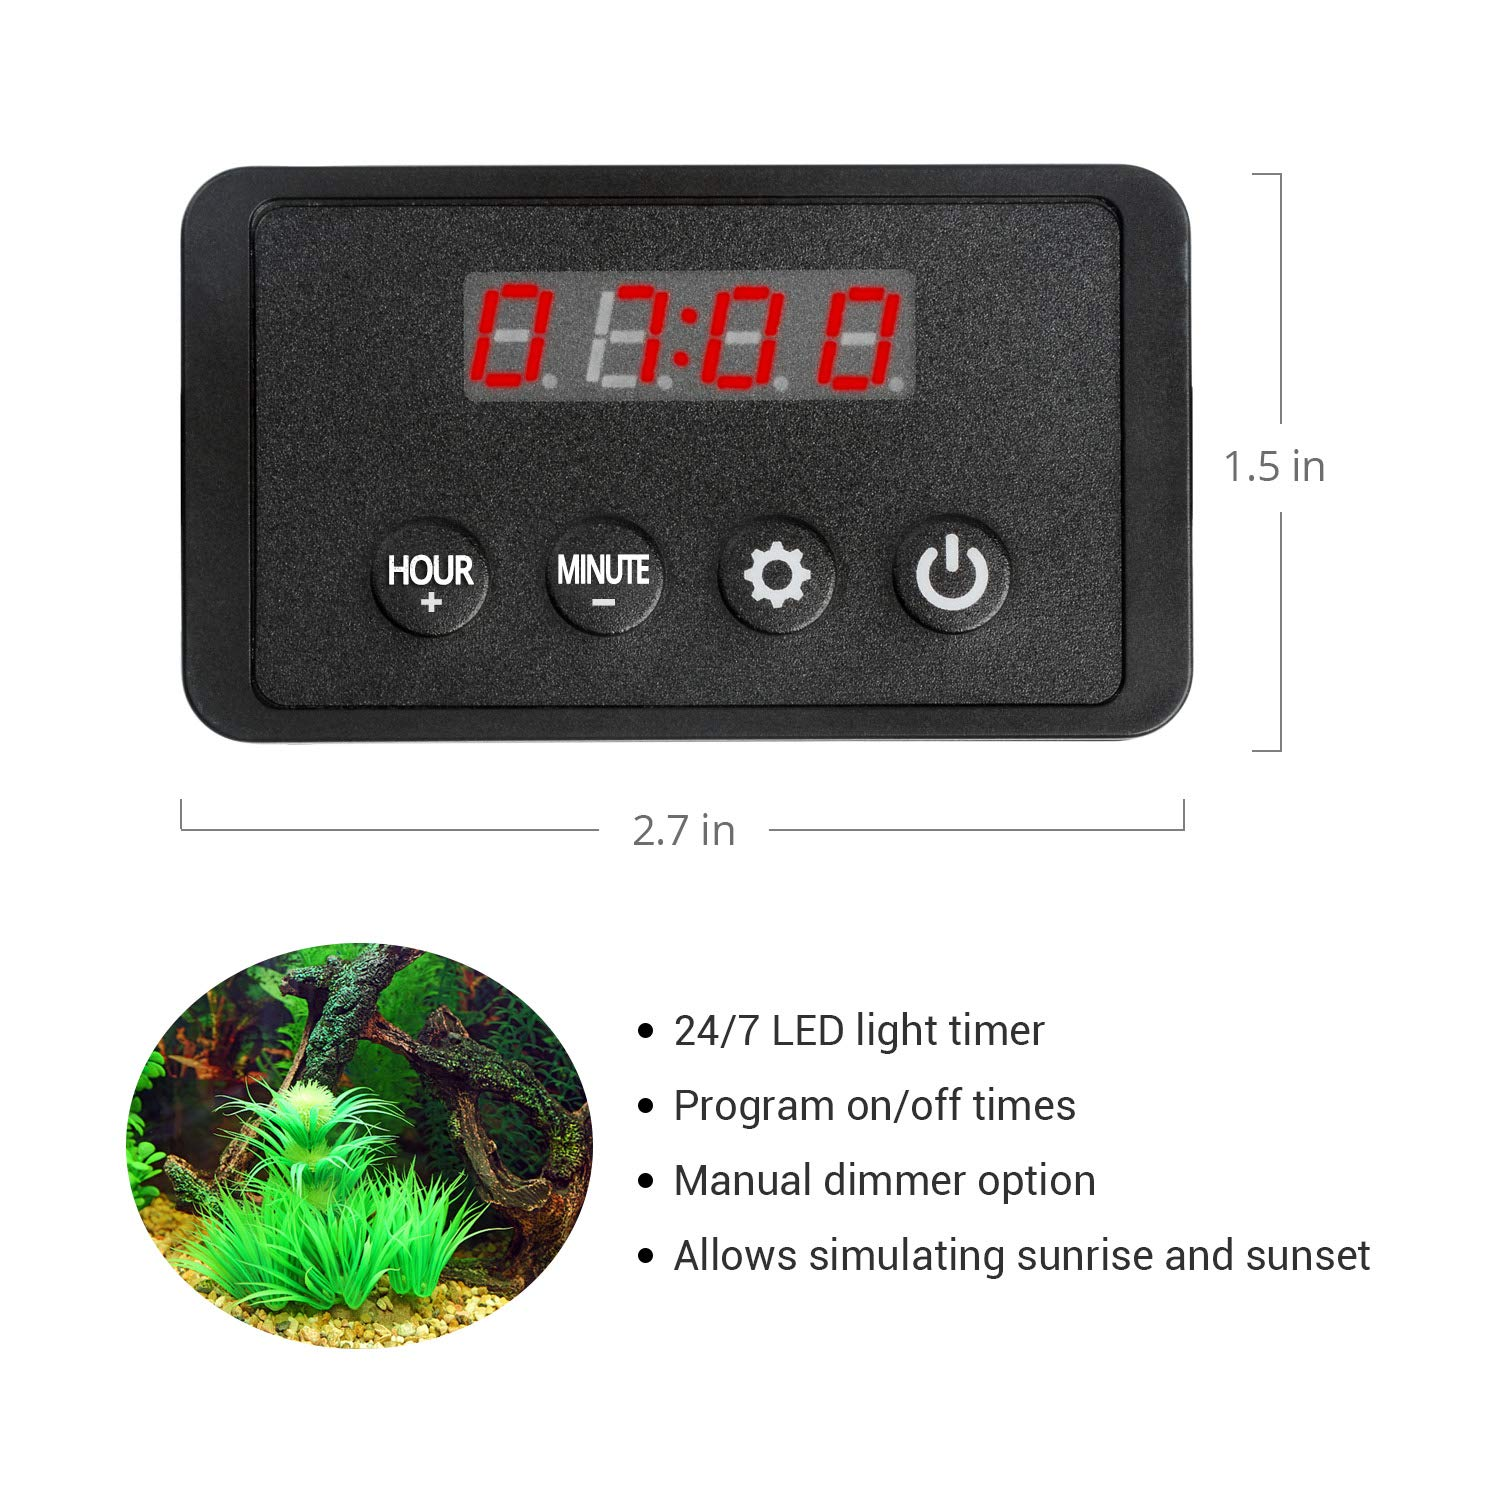 Amazon.com : NICREW Single Channel LED Light Timer for Aquarium, LED Digital Dimmer ClassicLED, ClassicLED Plus, BrightLED and Other Lights with Standard ...